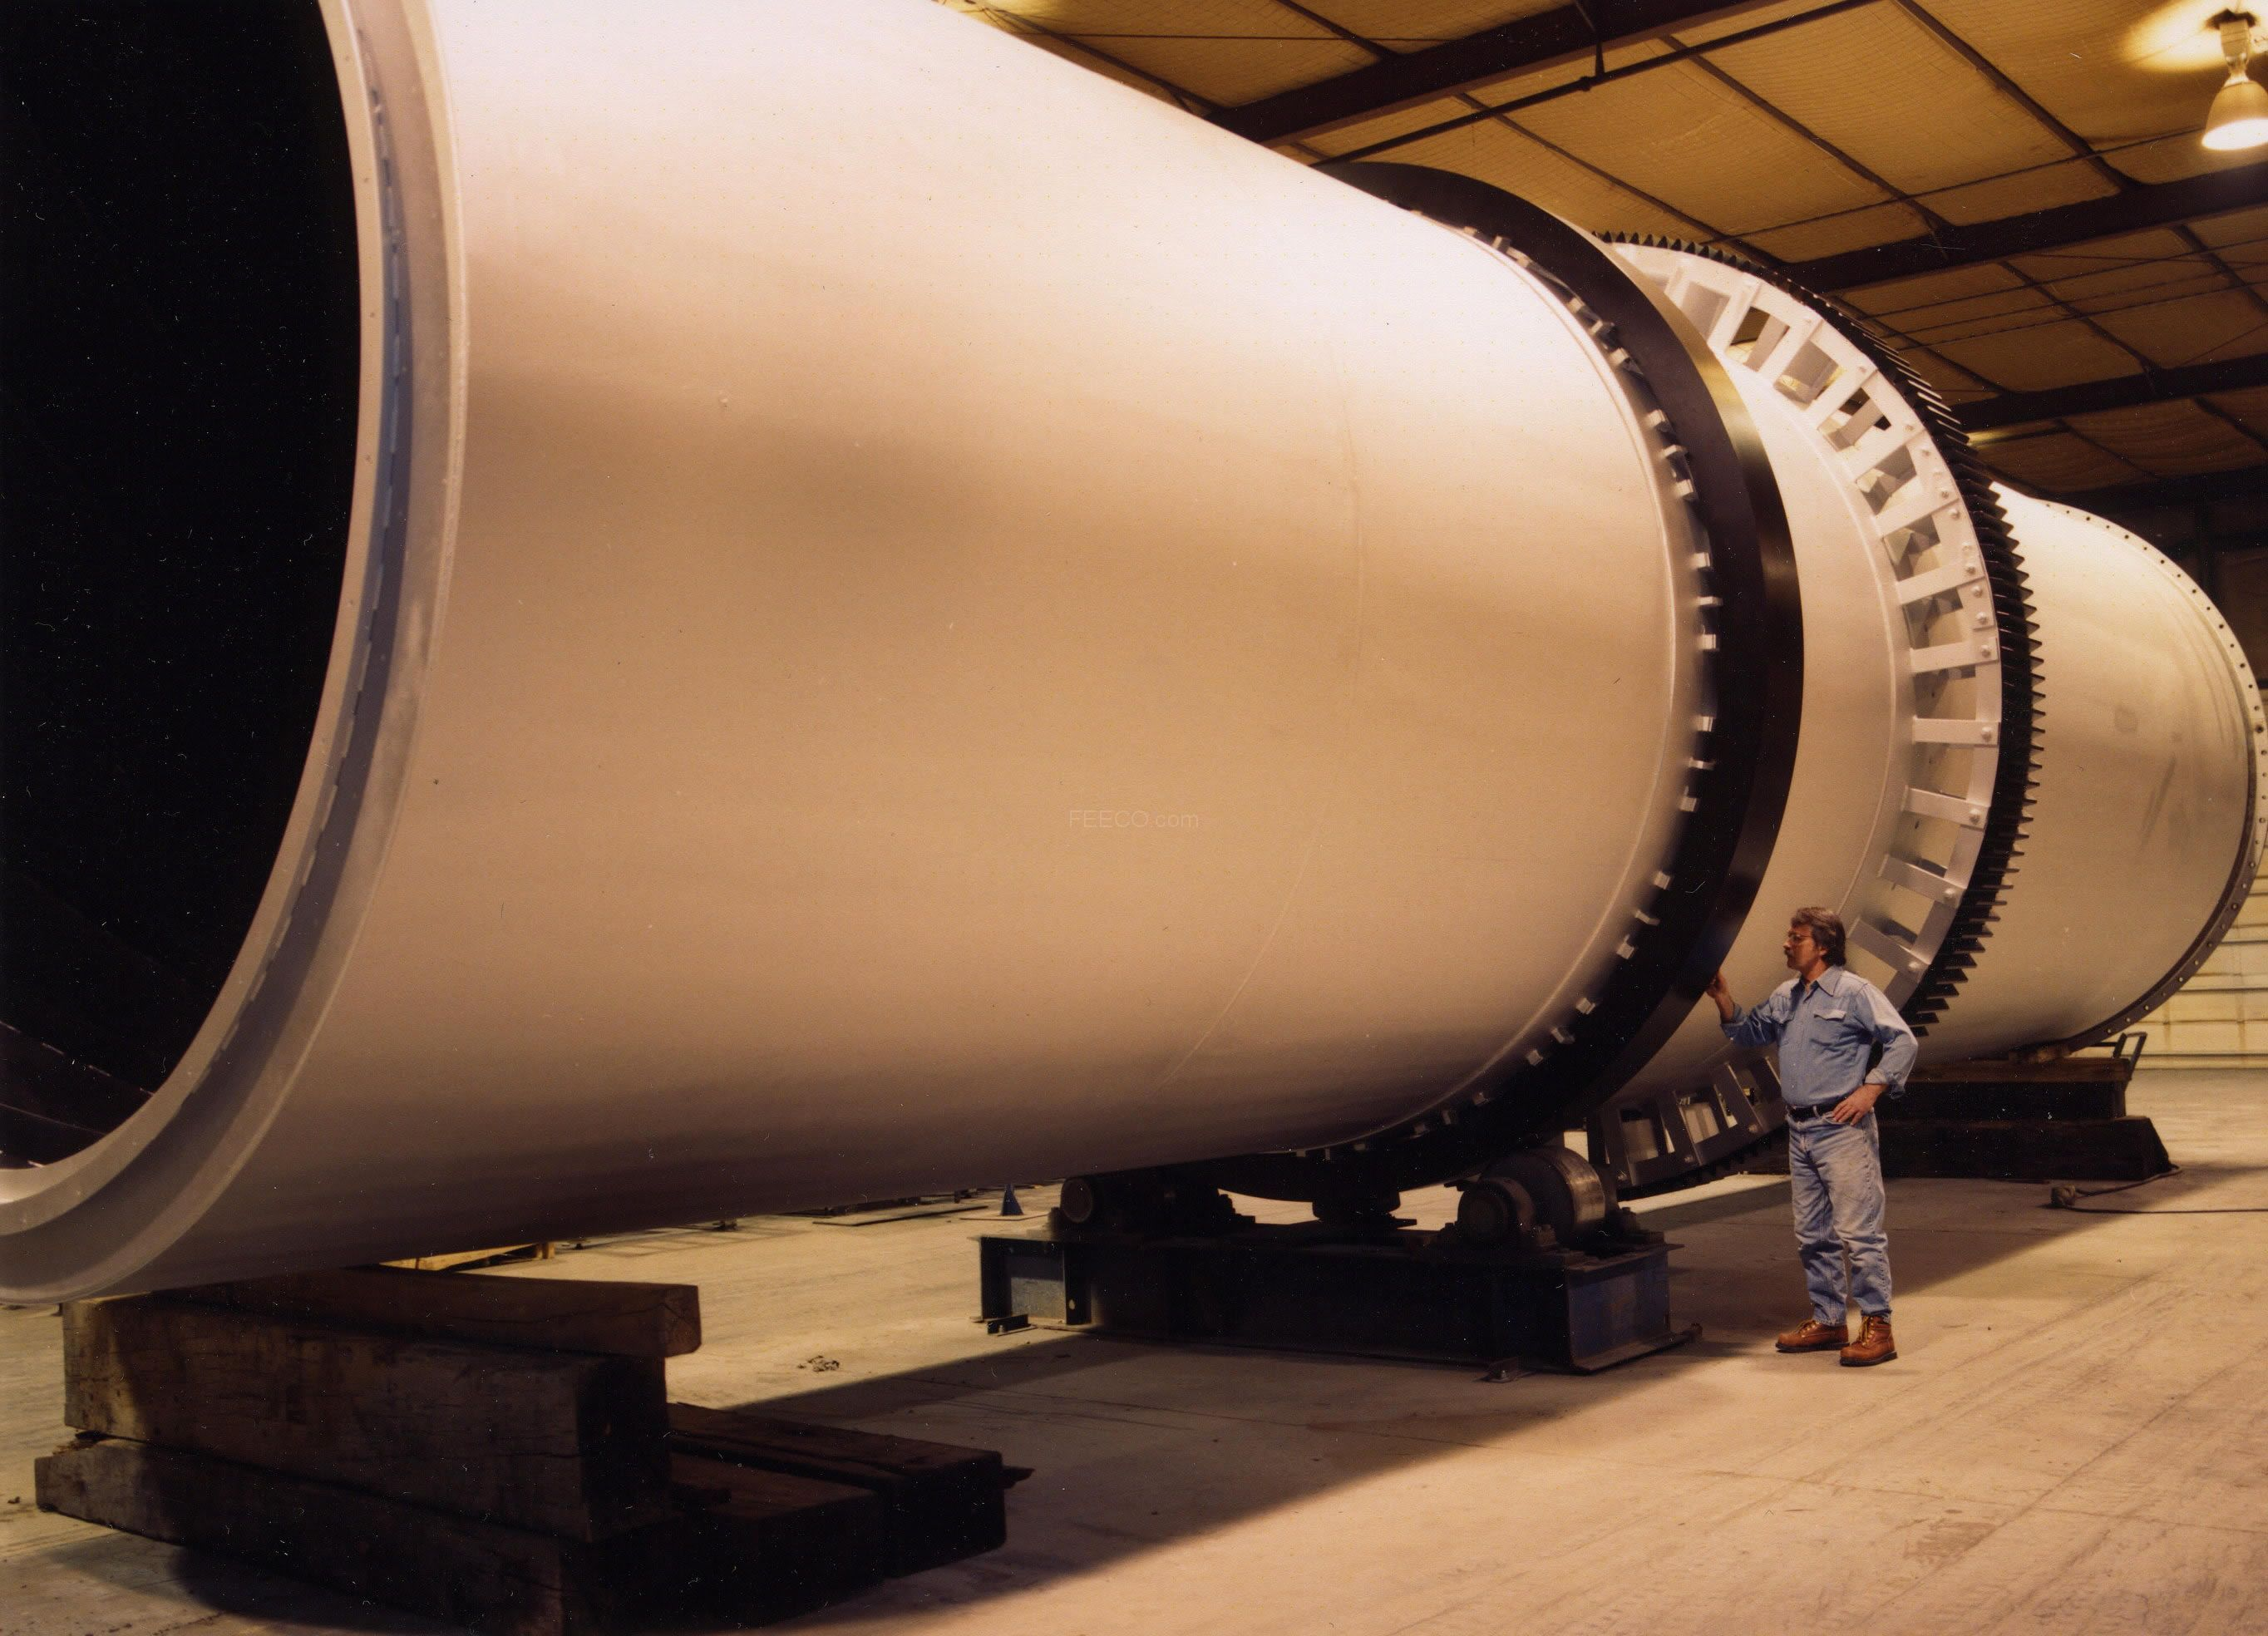 rotary kiln Ati environnement undertakes into sustainable development by proposing  installation with renewable energy to generate steam, hot water, thermal oil or.